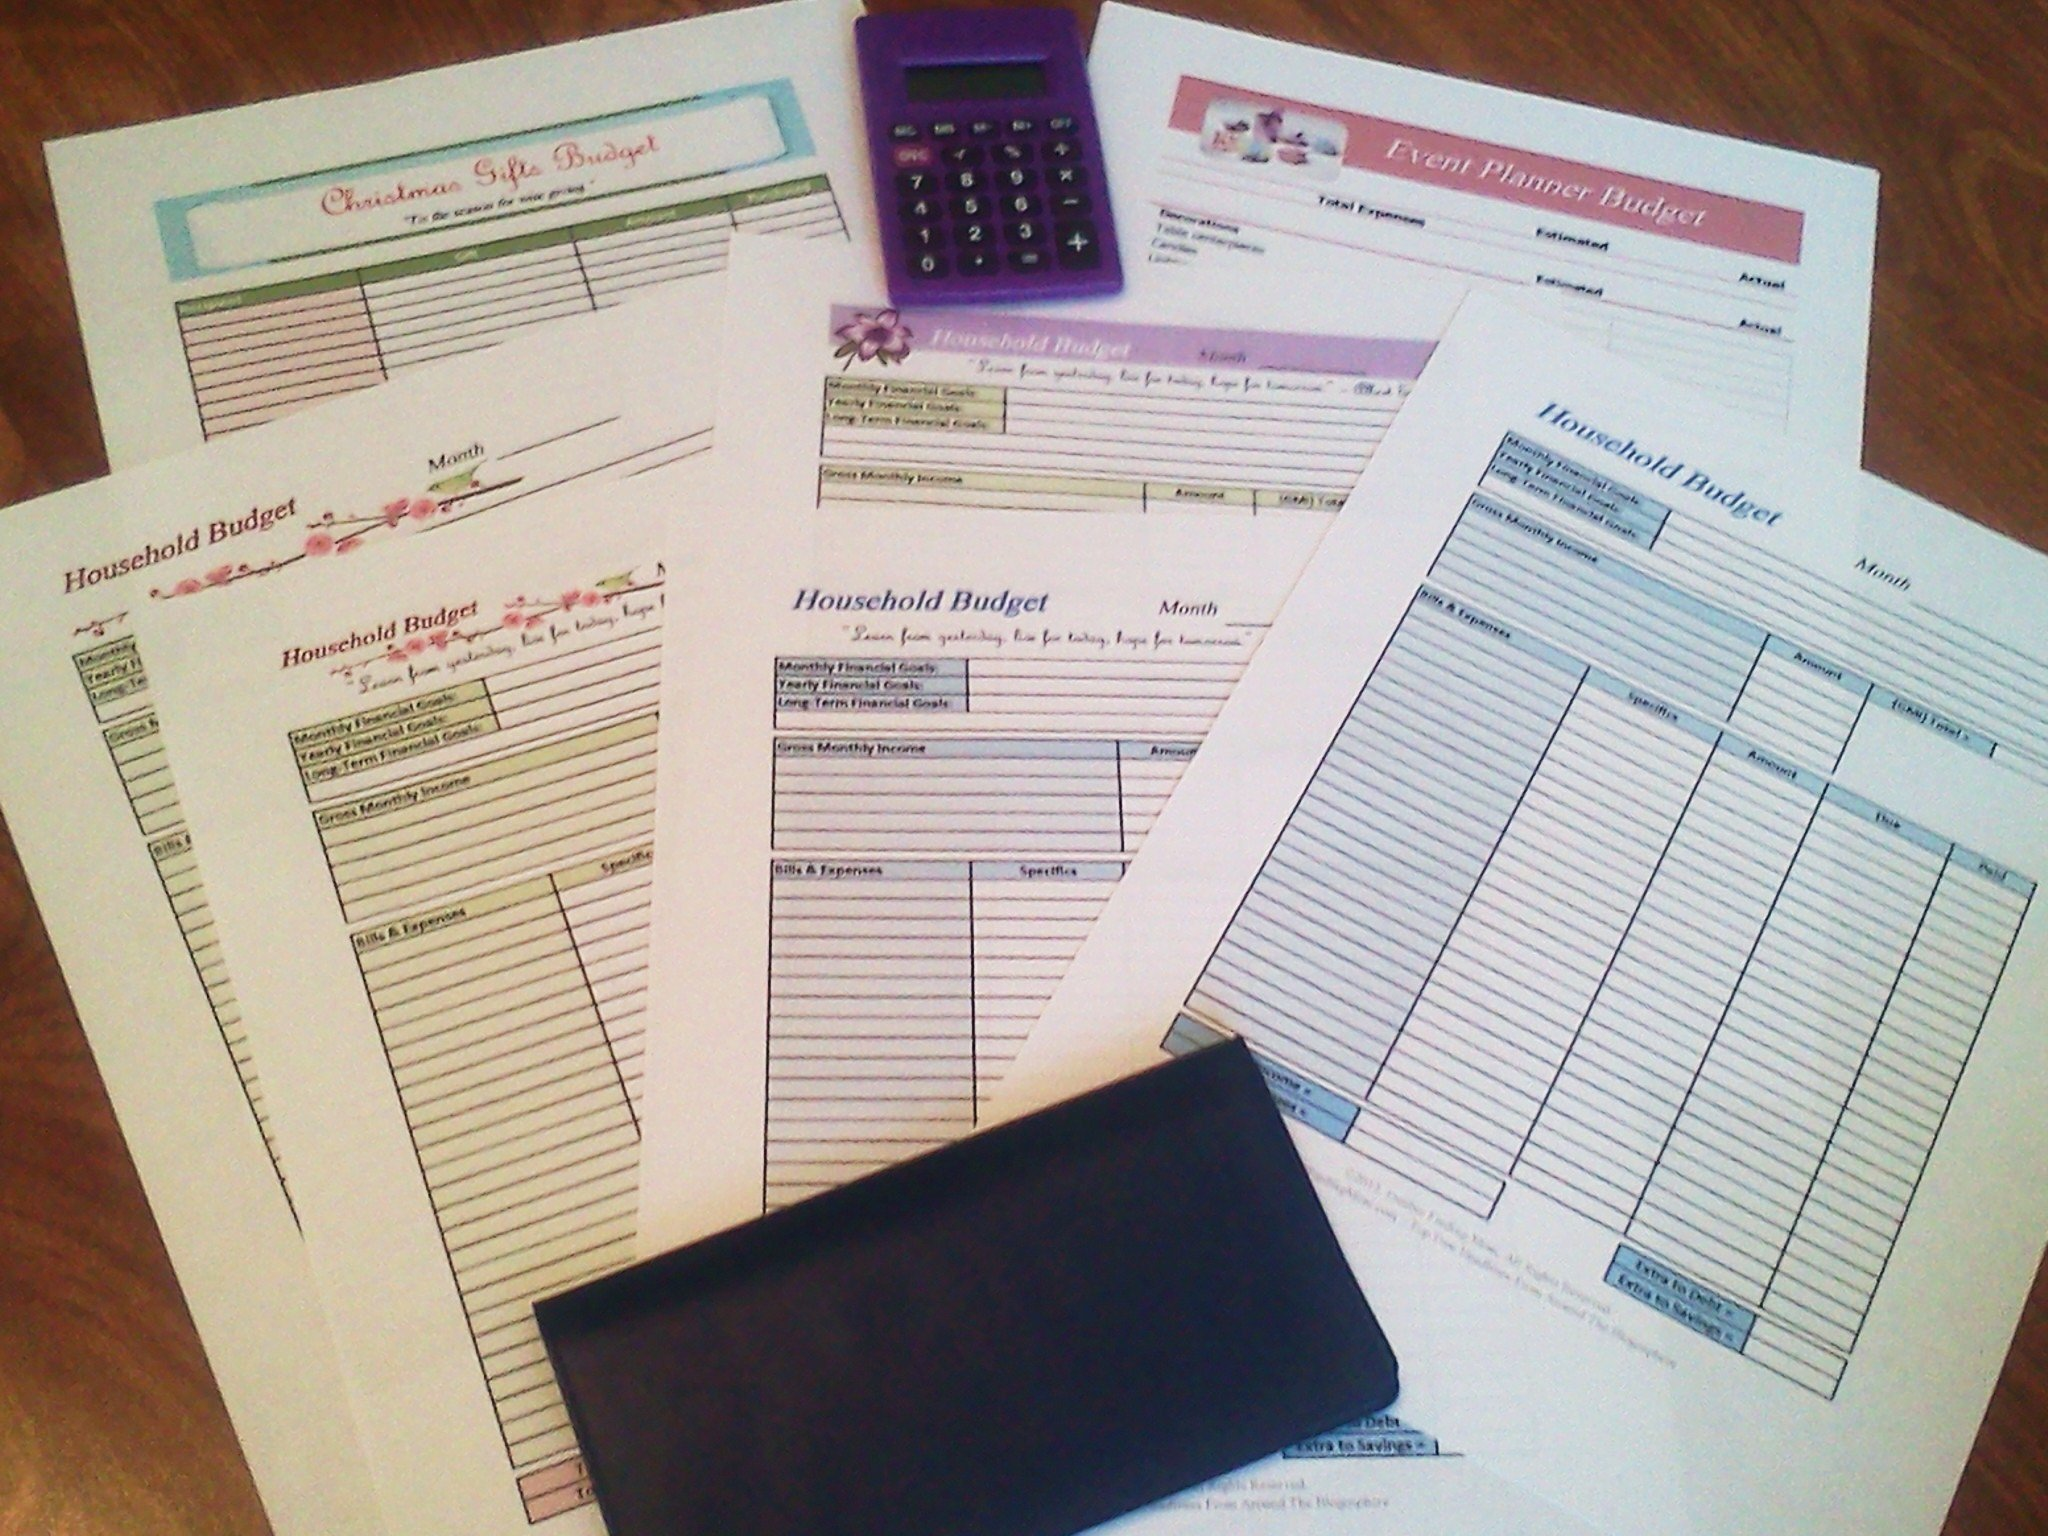 Worksheets Budget Worksheets Free free printable budget worksheets download or print worksheets